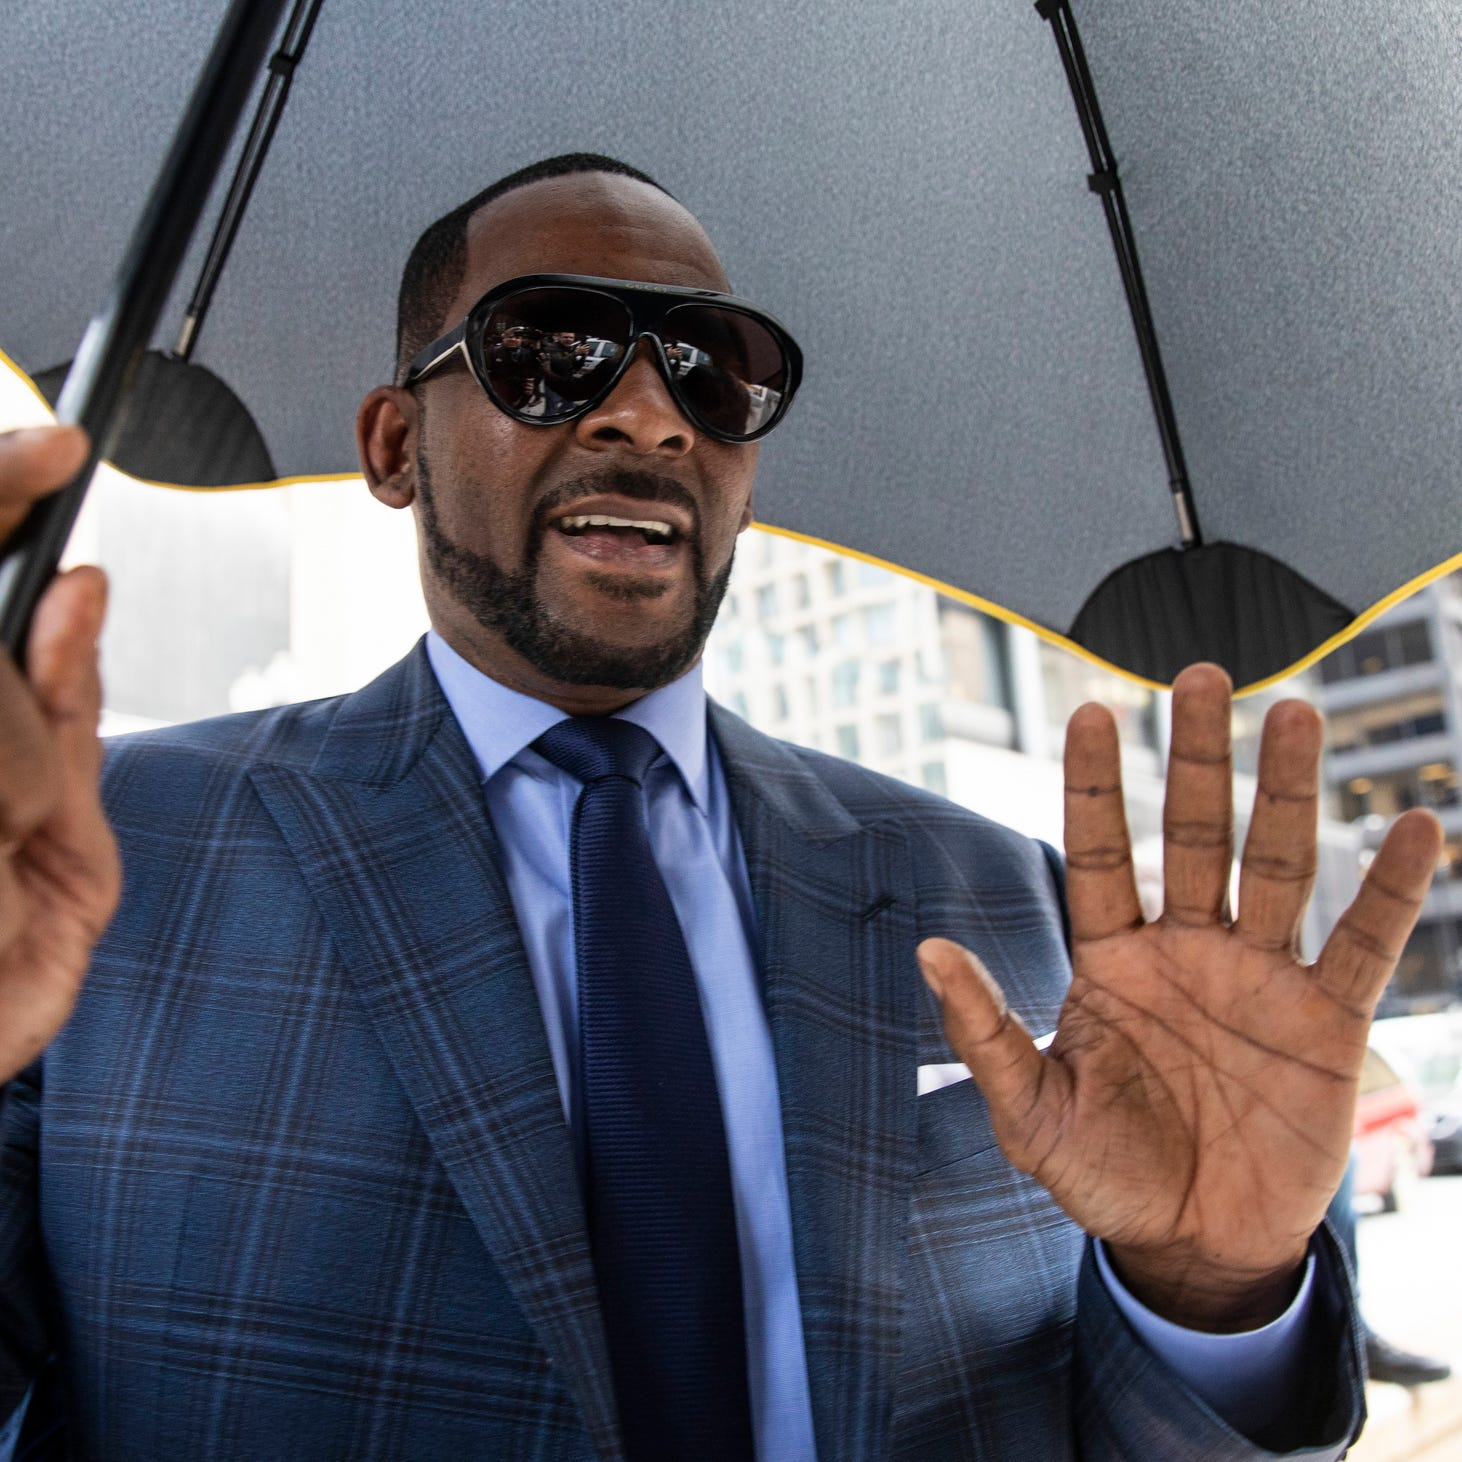 R. Kelly's ex-lawyer says he was 'guilty as hell' when he defended him years ago